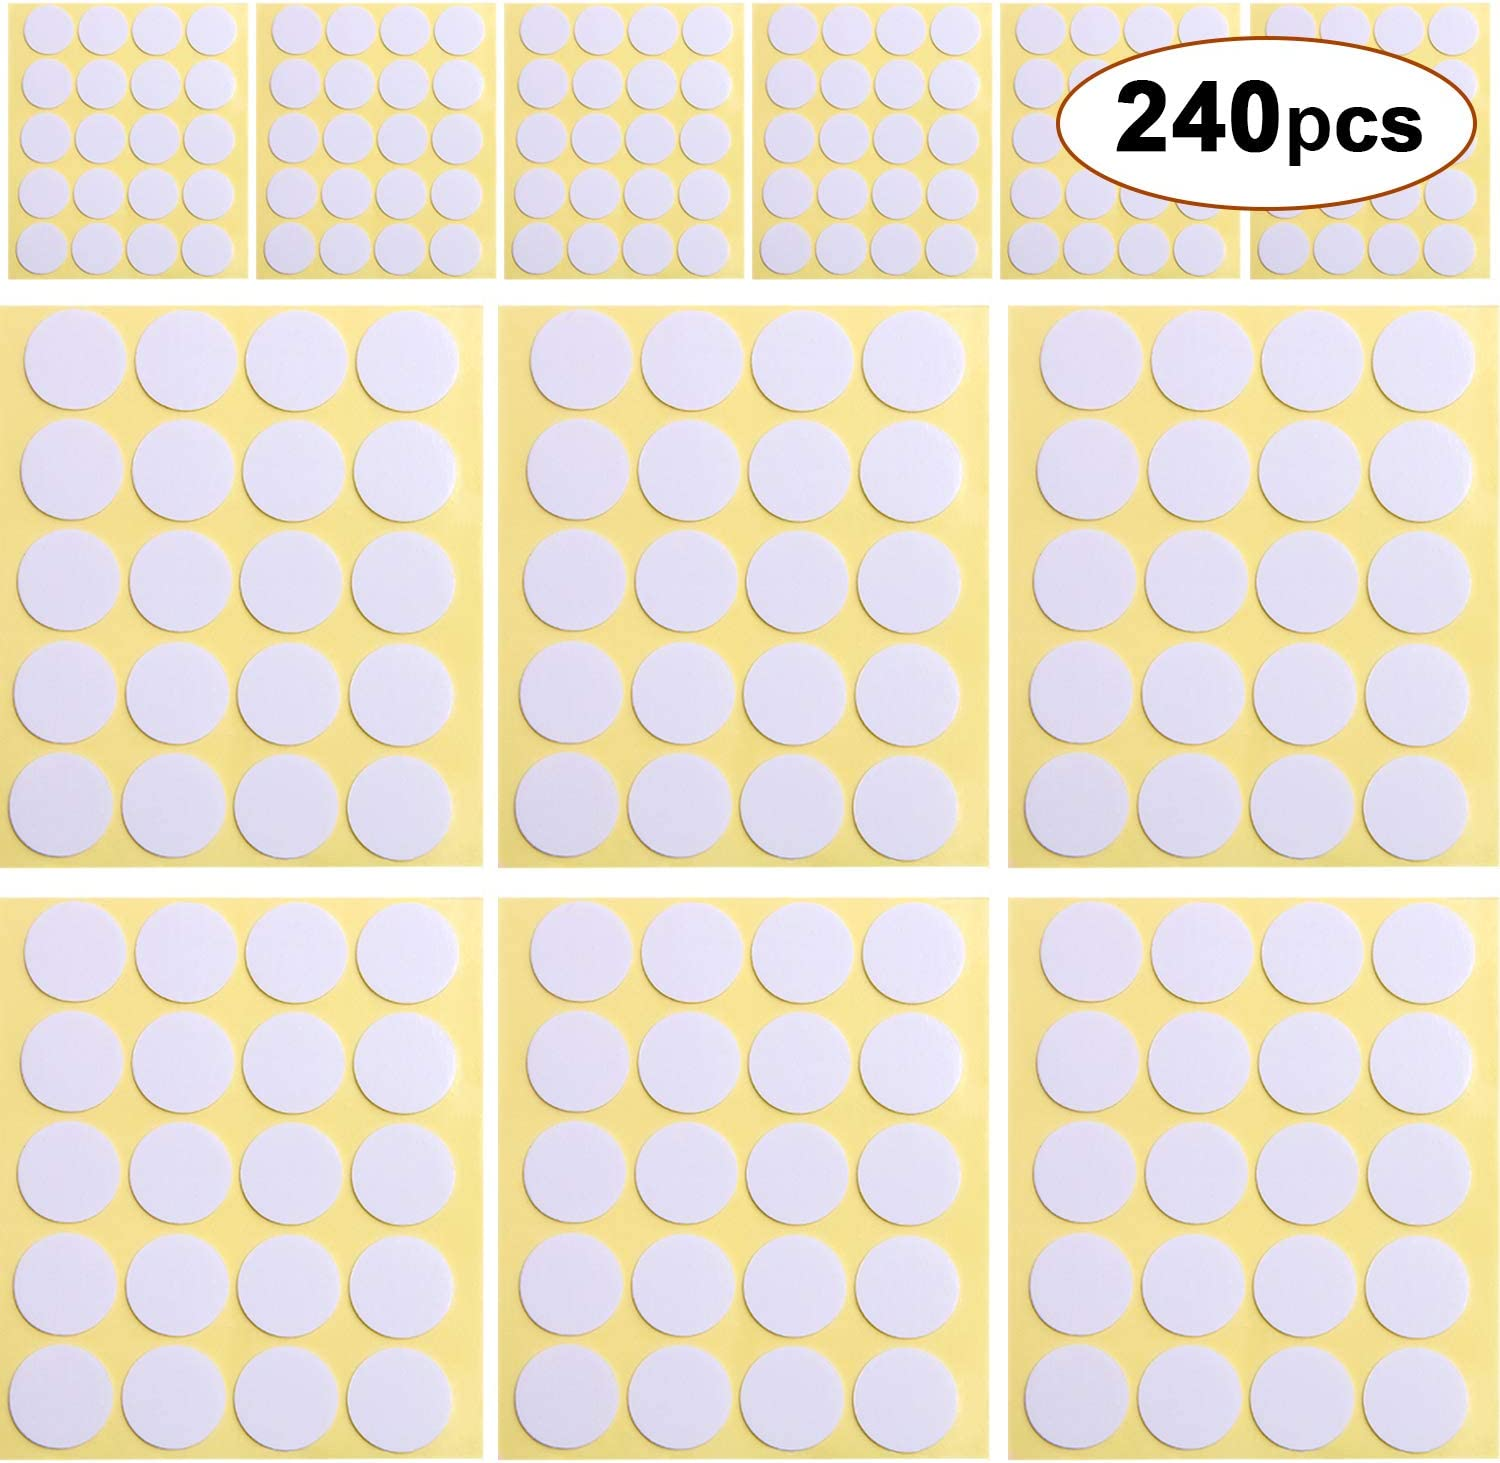 240pcs Candle Wick Stickers Heat Resistance Candle Making Double-Sided Stickers